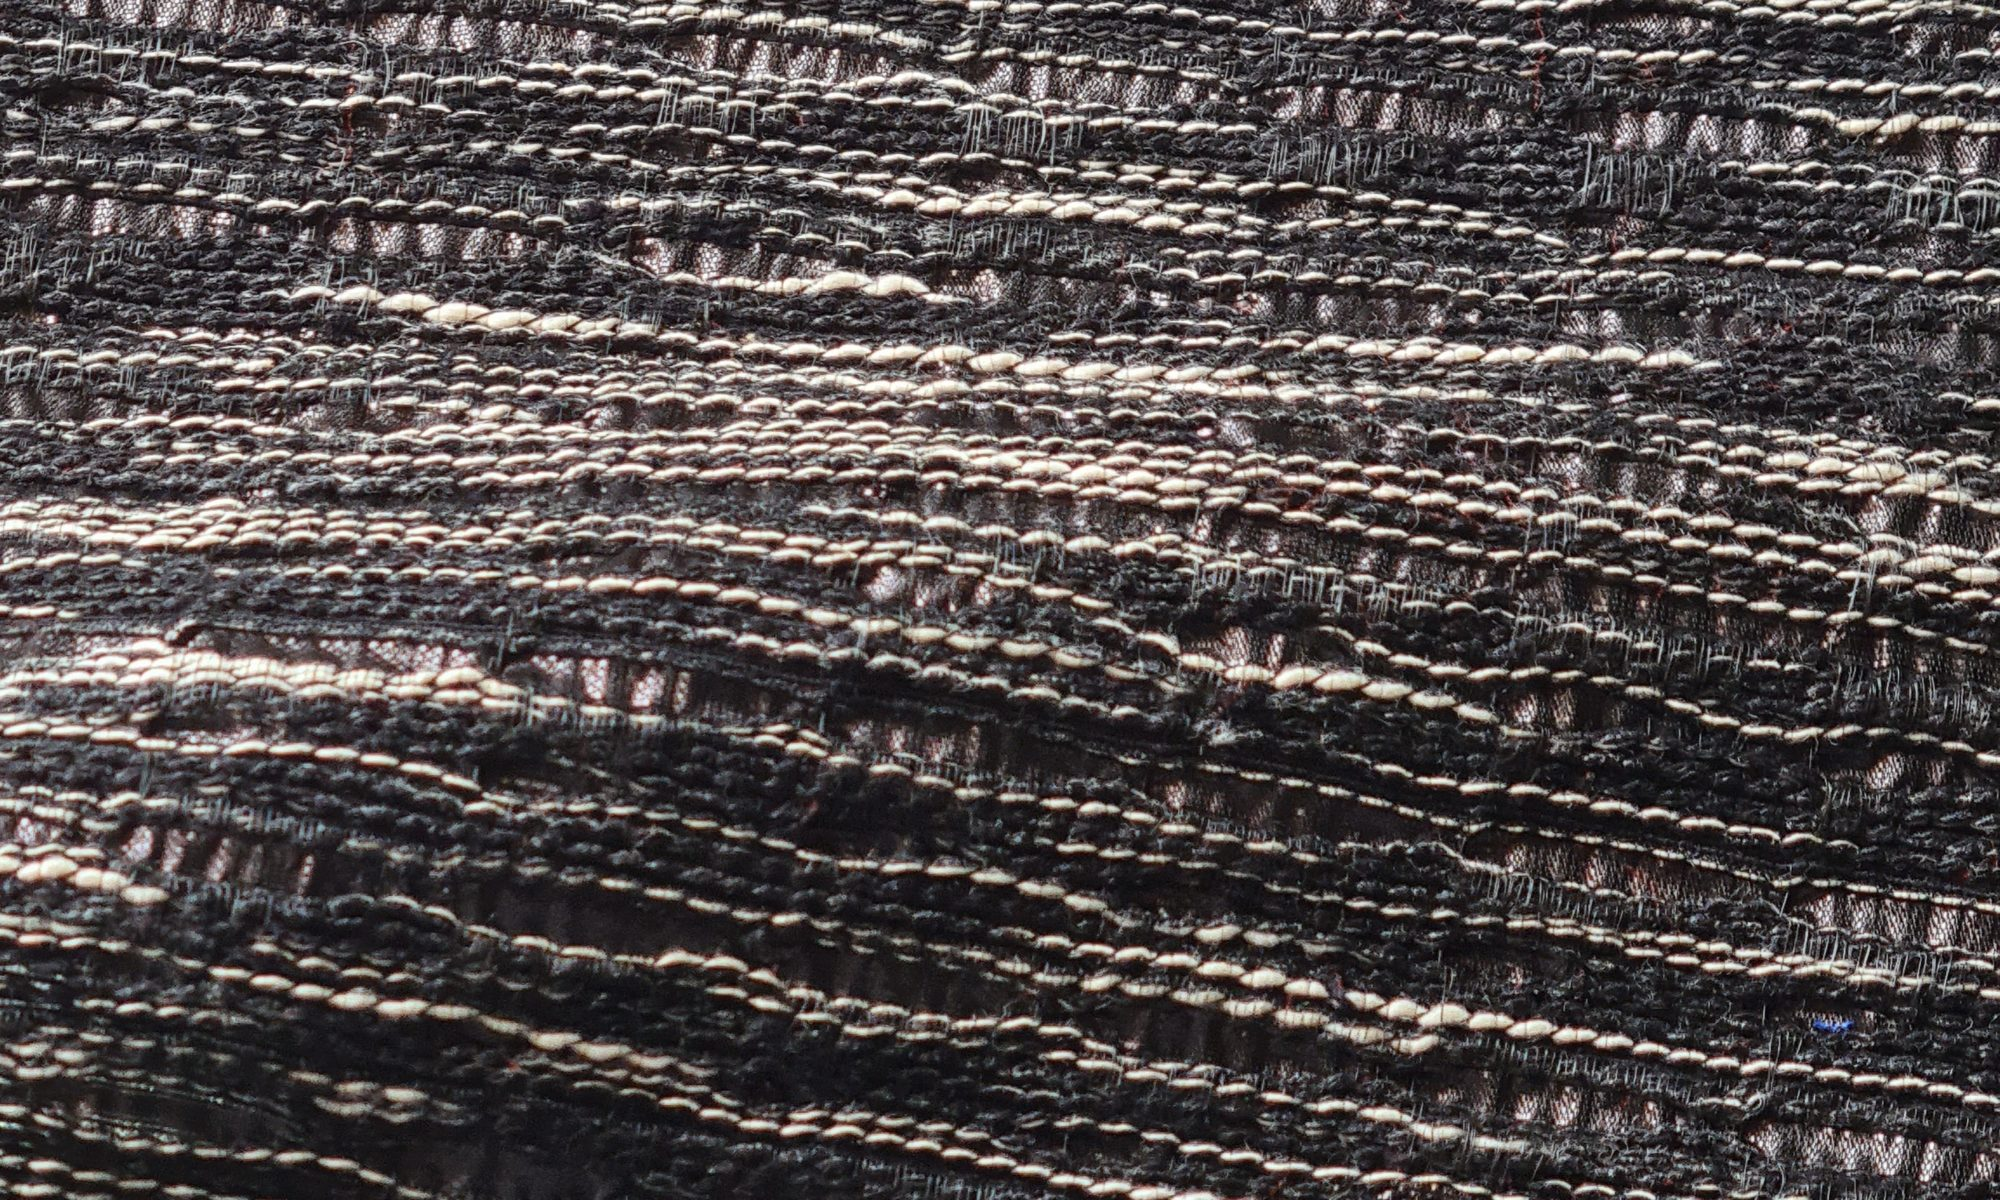 7571 chanel black jacket fabric WIDTH cm148 WEIGHT gr415 - gr280 square meter - COMPOSITION 63 cotton 19 polyester 7 acrylic 6 polyammide 5 others - 450mts